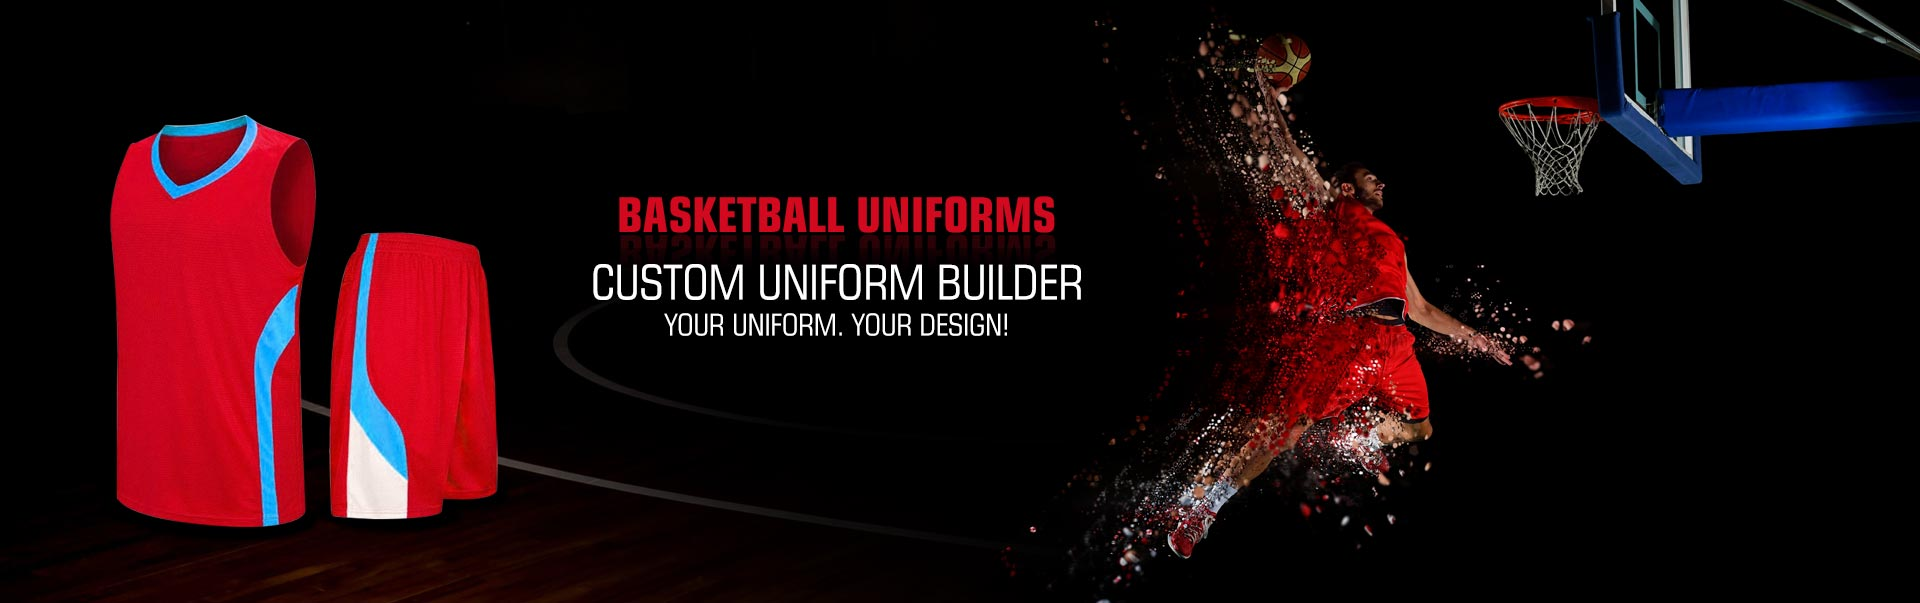 Basketball Uniforms Wholesaler, Suppliers in Lakeland